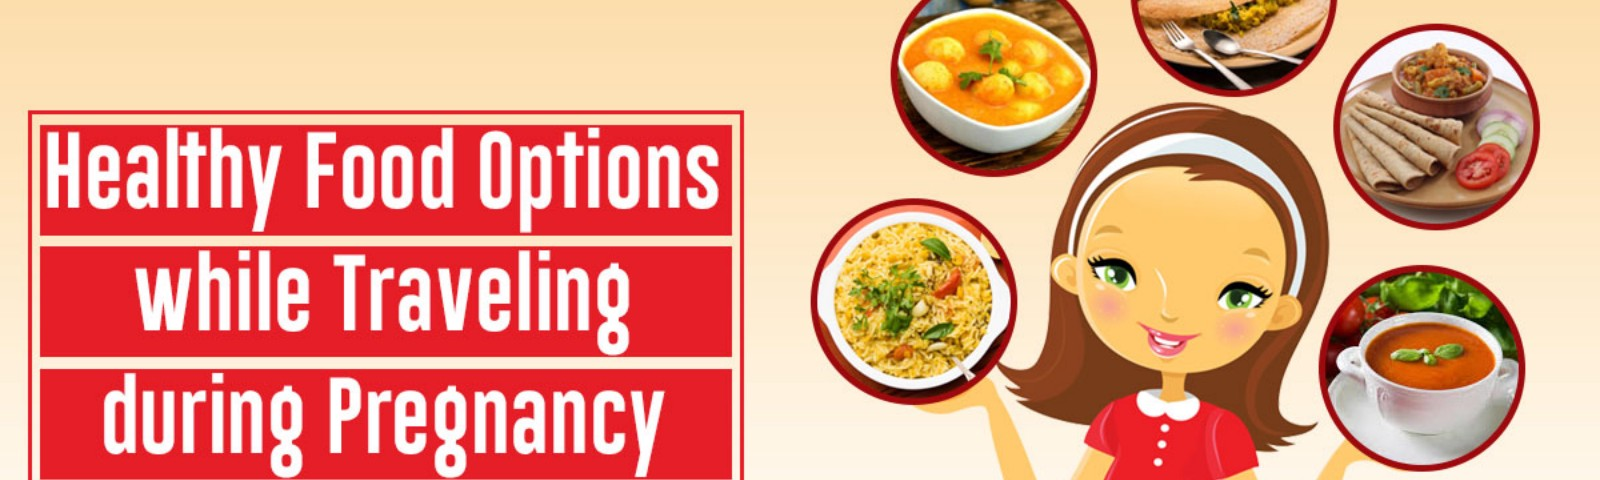 Healthy Food Options While Traveling During Pregnancy